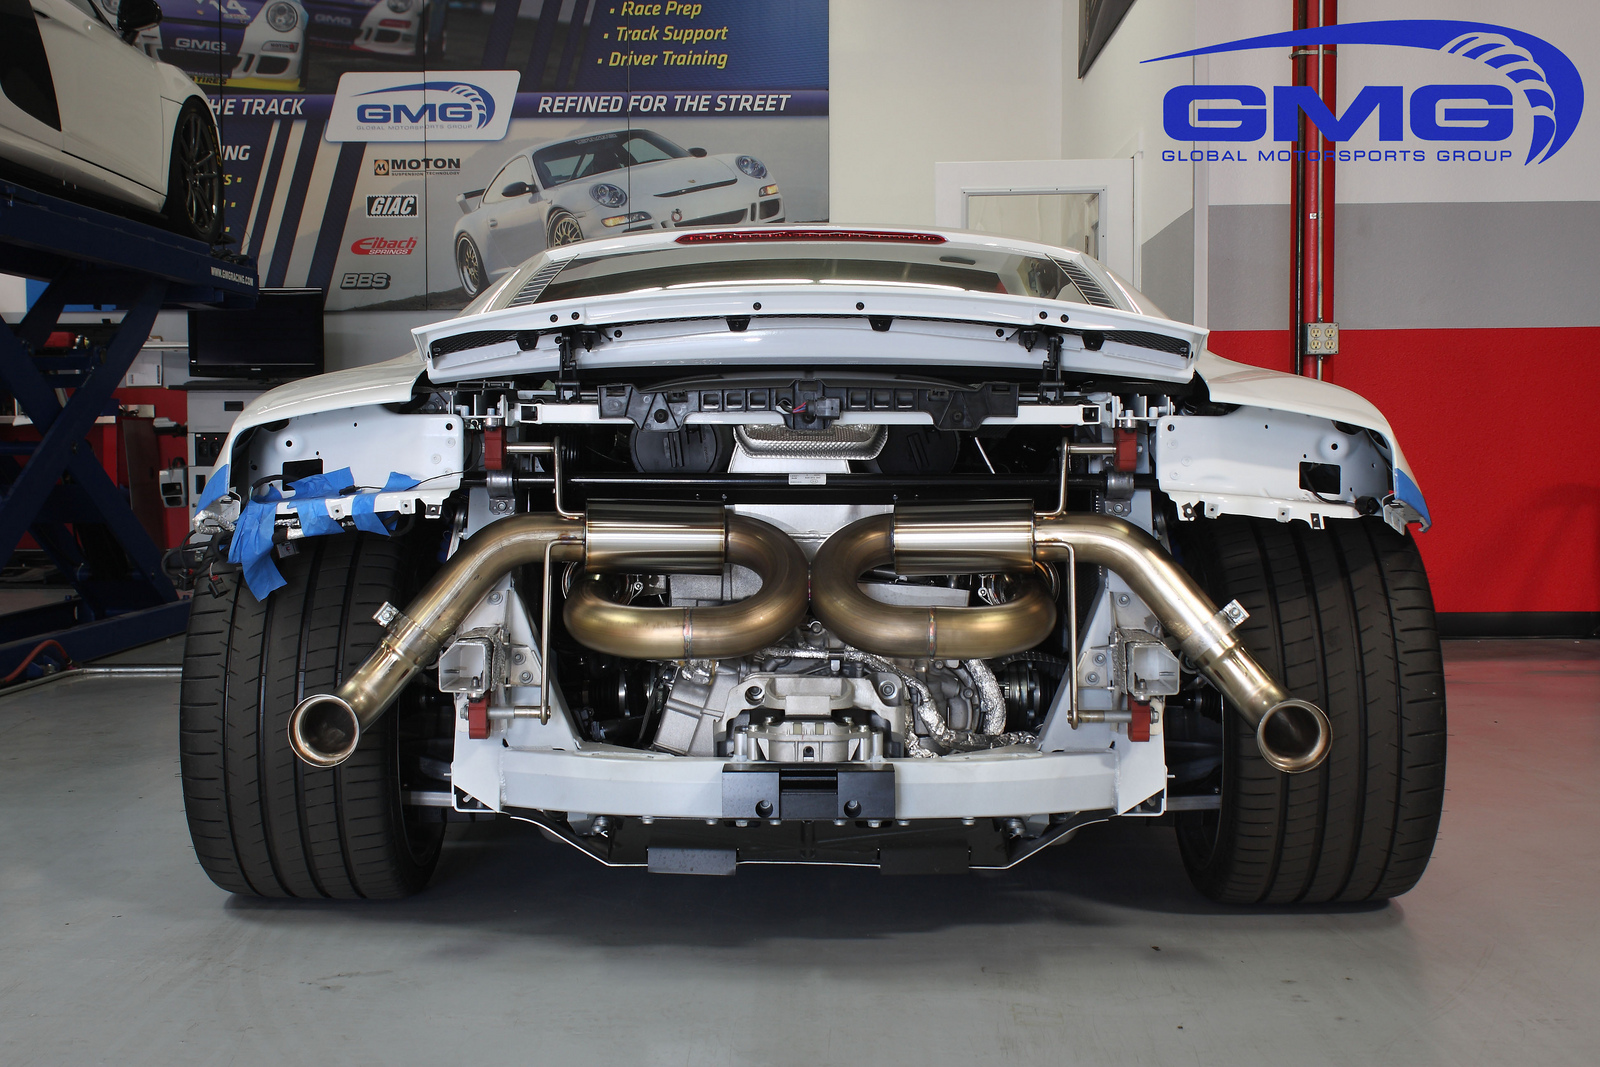 Audi R8 V10 With Gmg Exhaust Videos